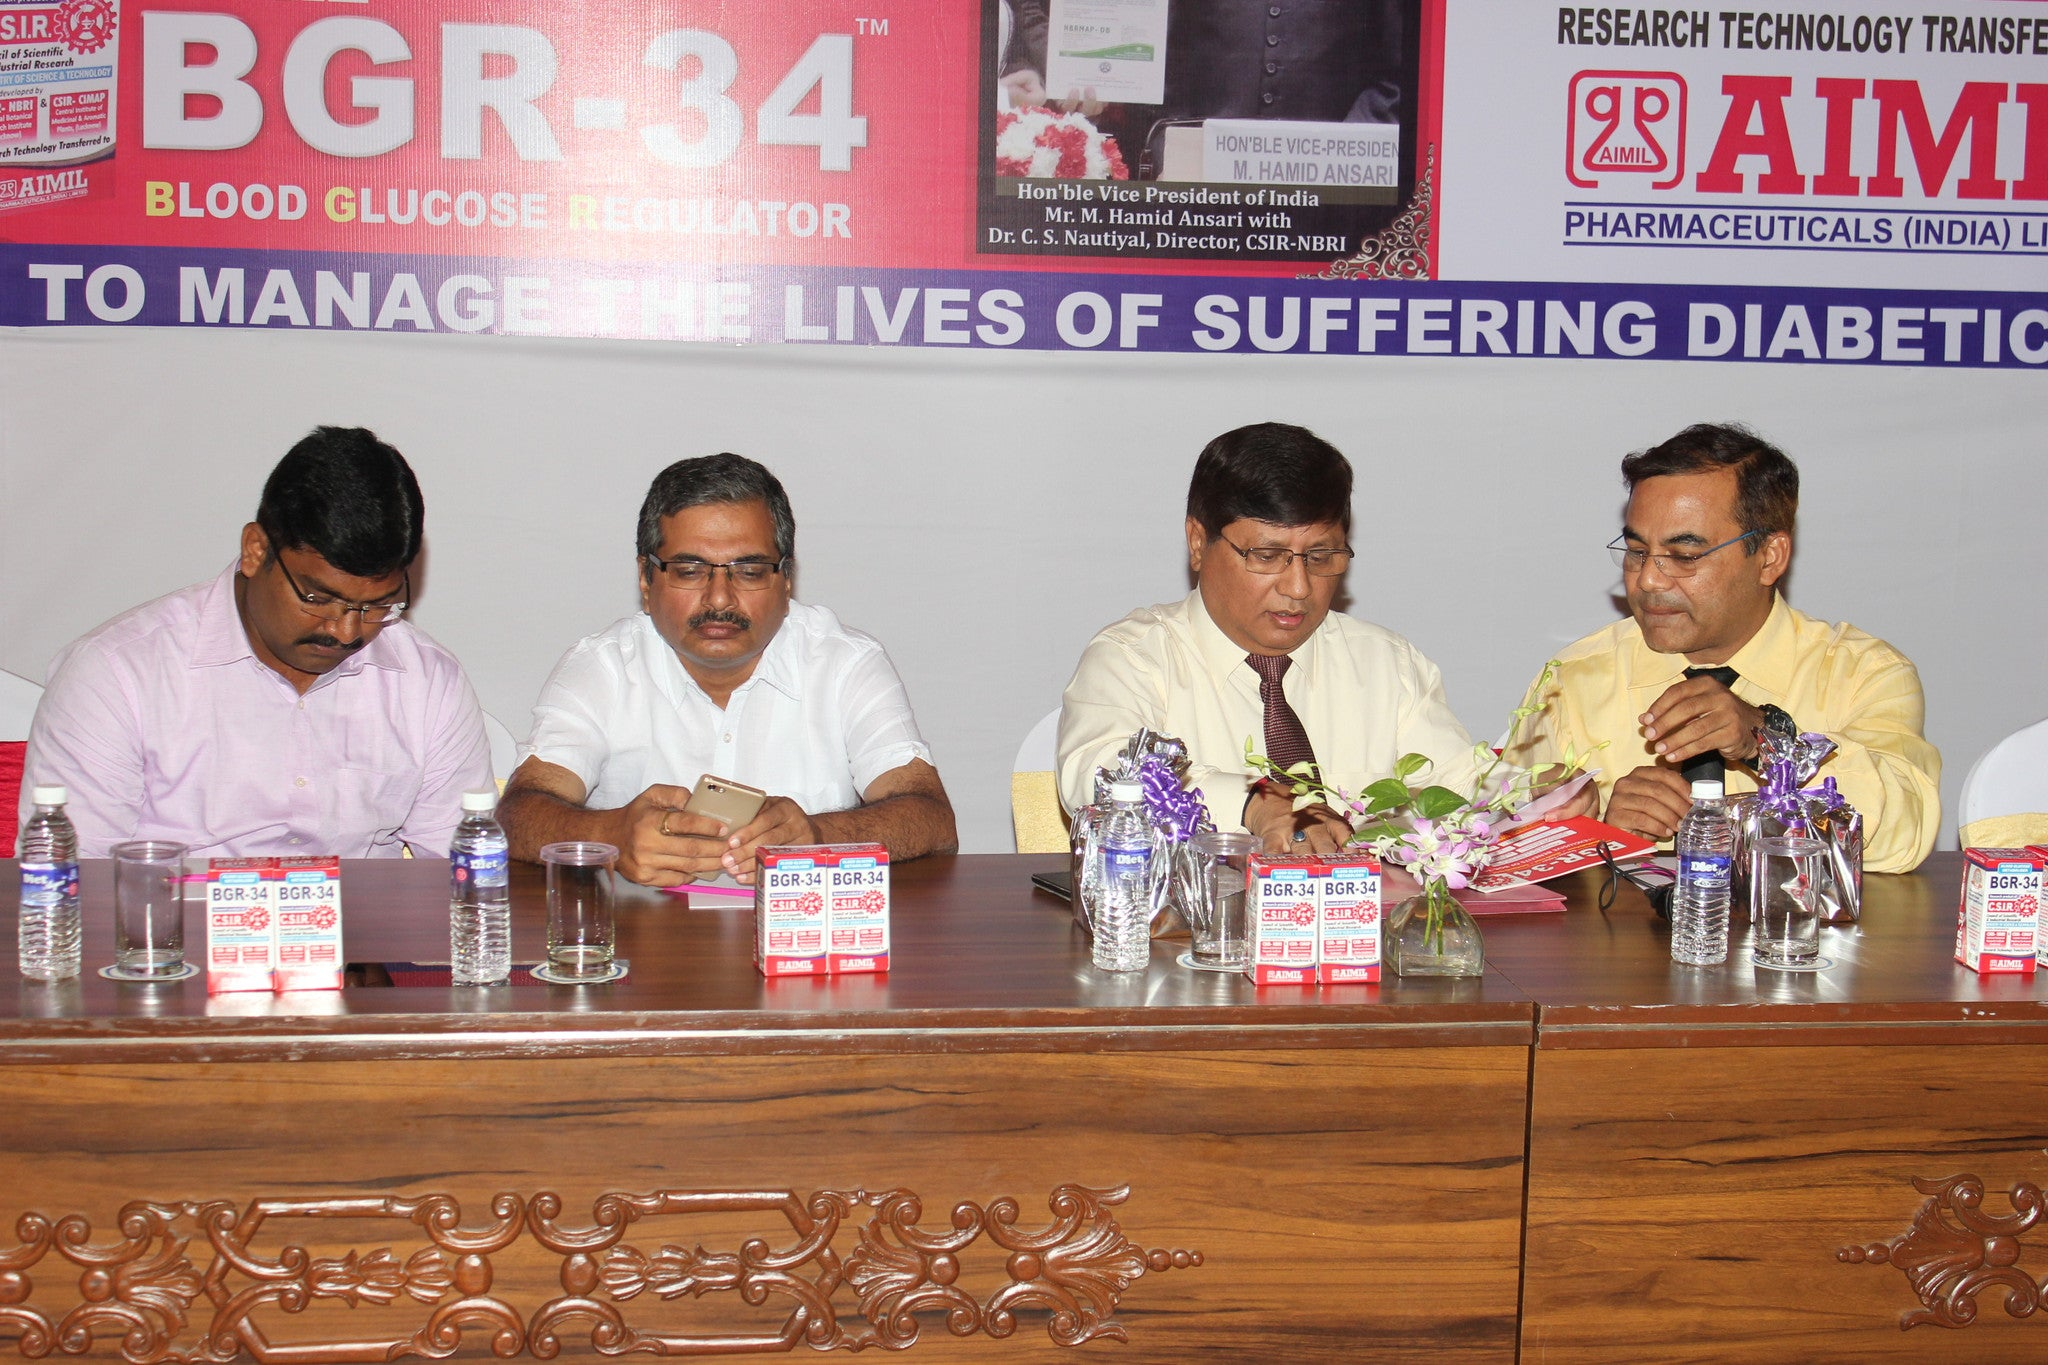 CSIR launches ayurvedic anti-diabetic drug BGR-34 in Siliguri